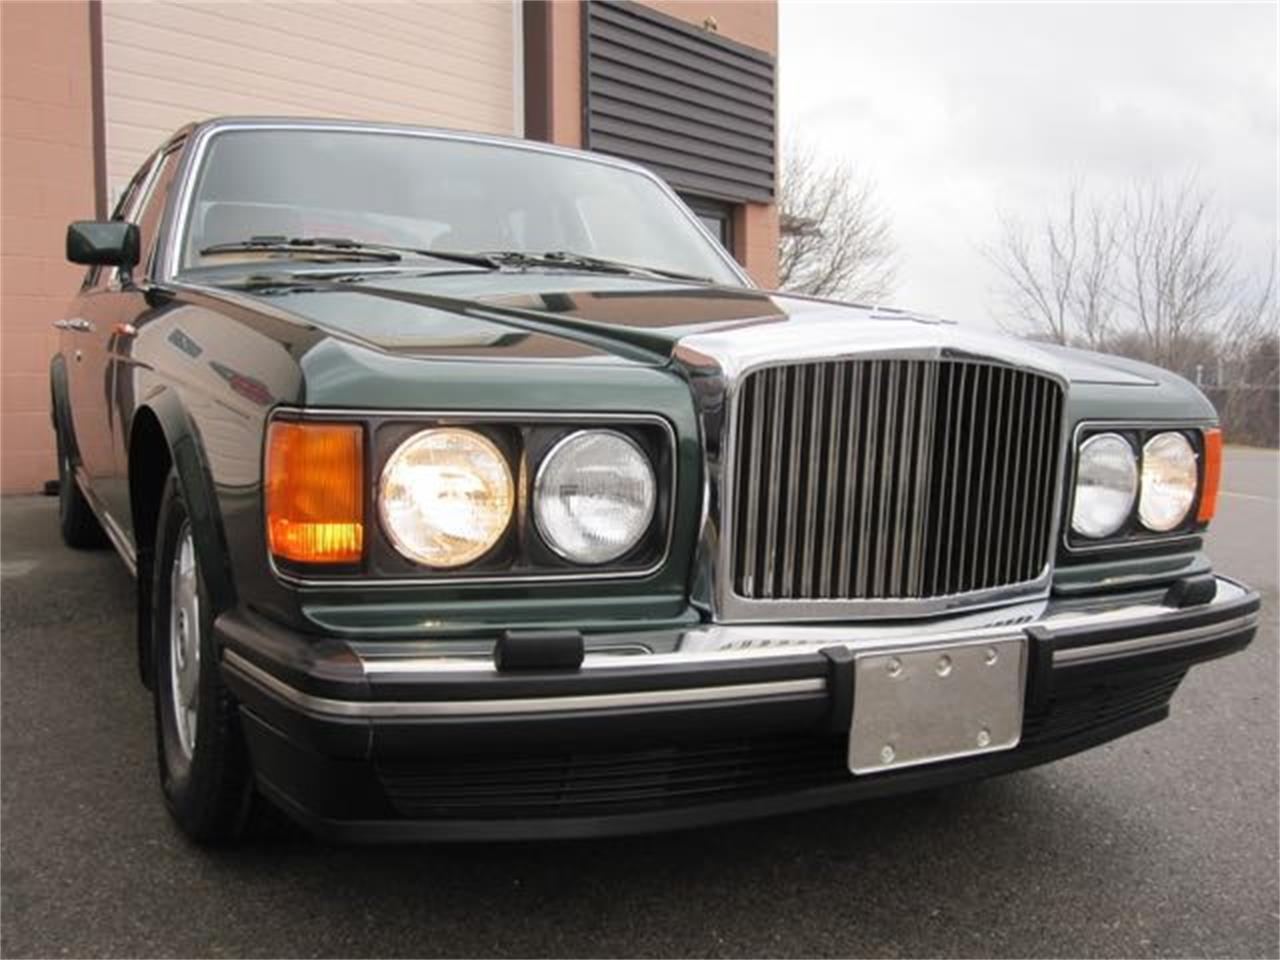 Large Picture of 1992 Mulsanne S Offered by Old Is New Again - LART